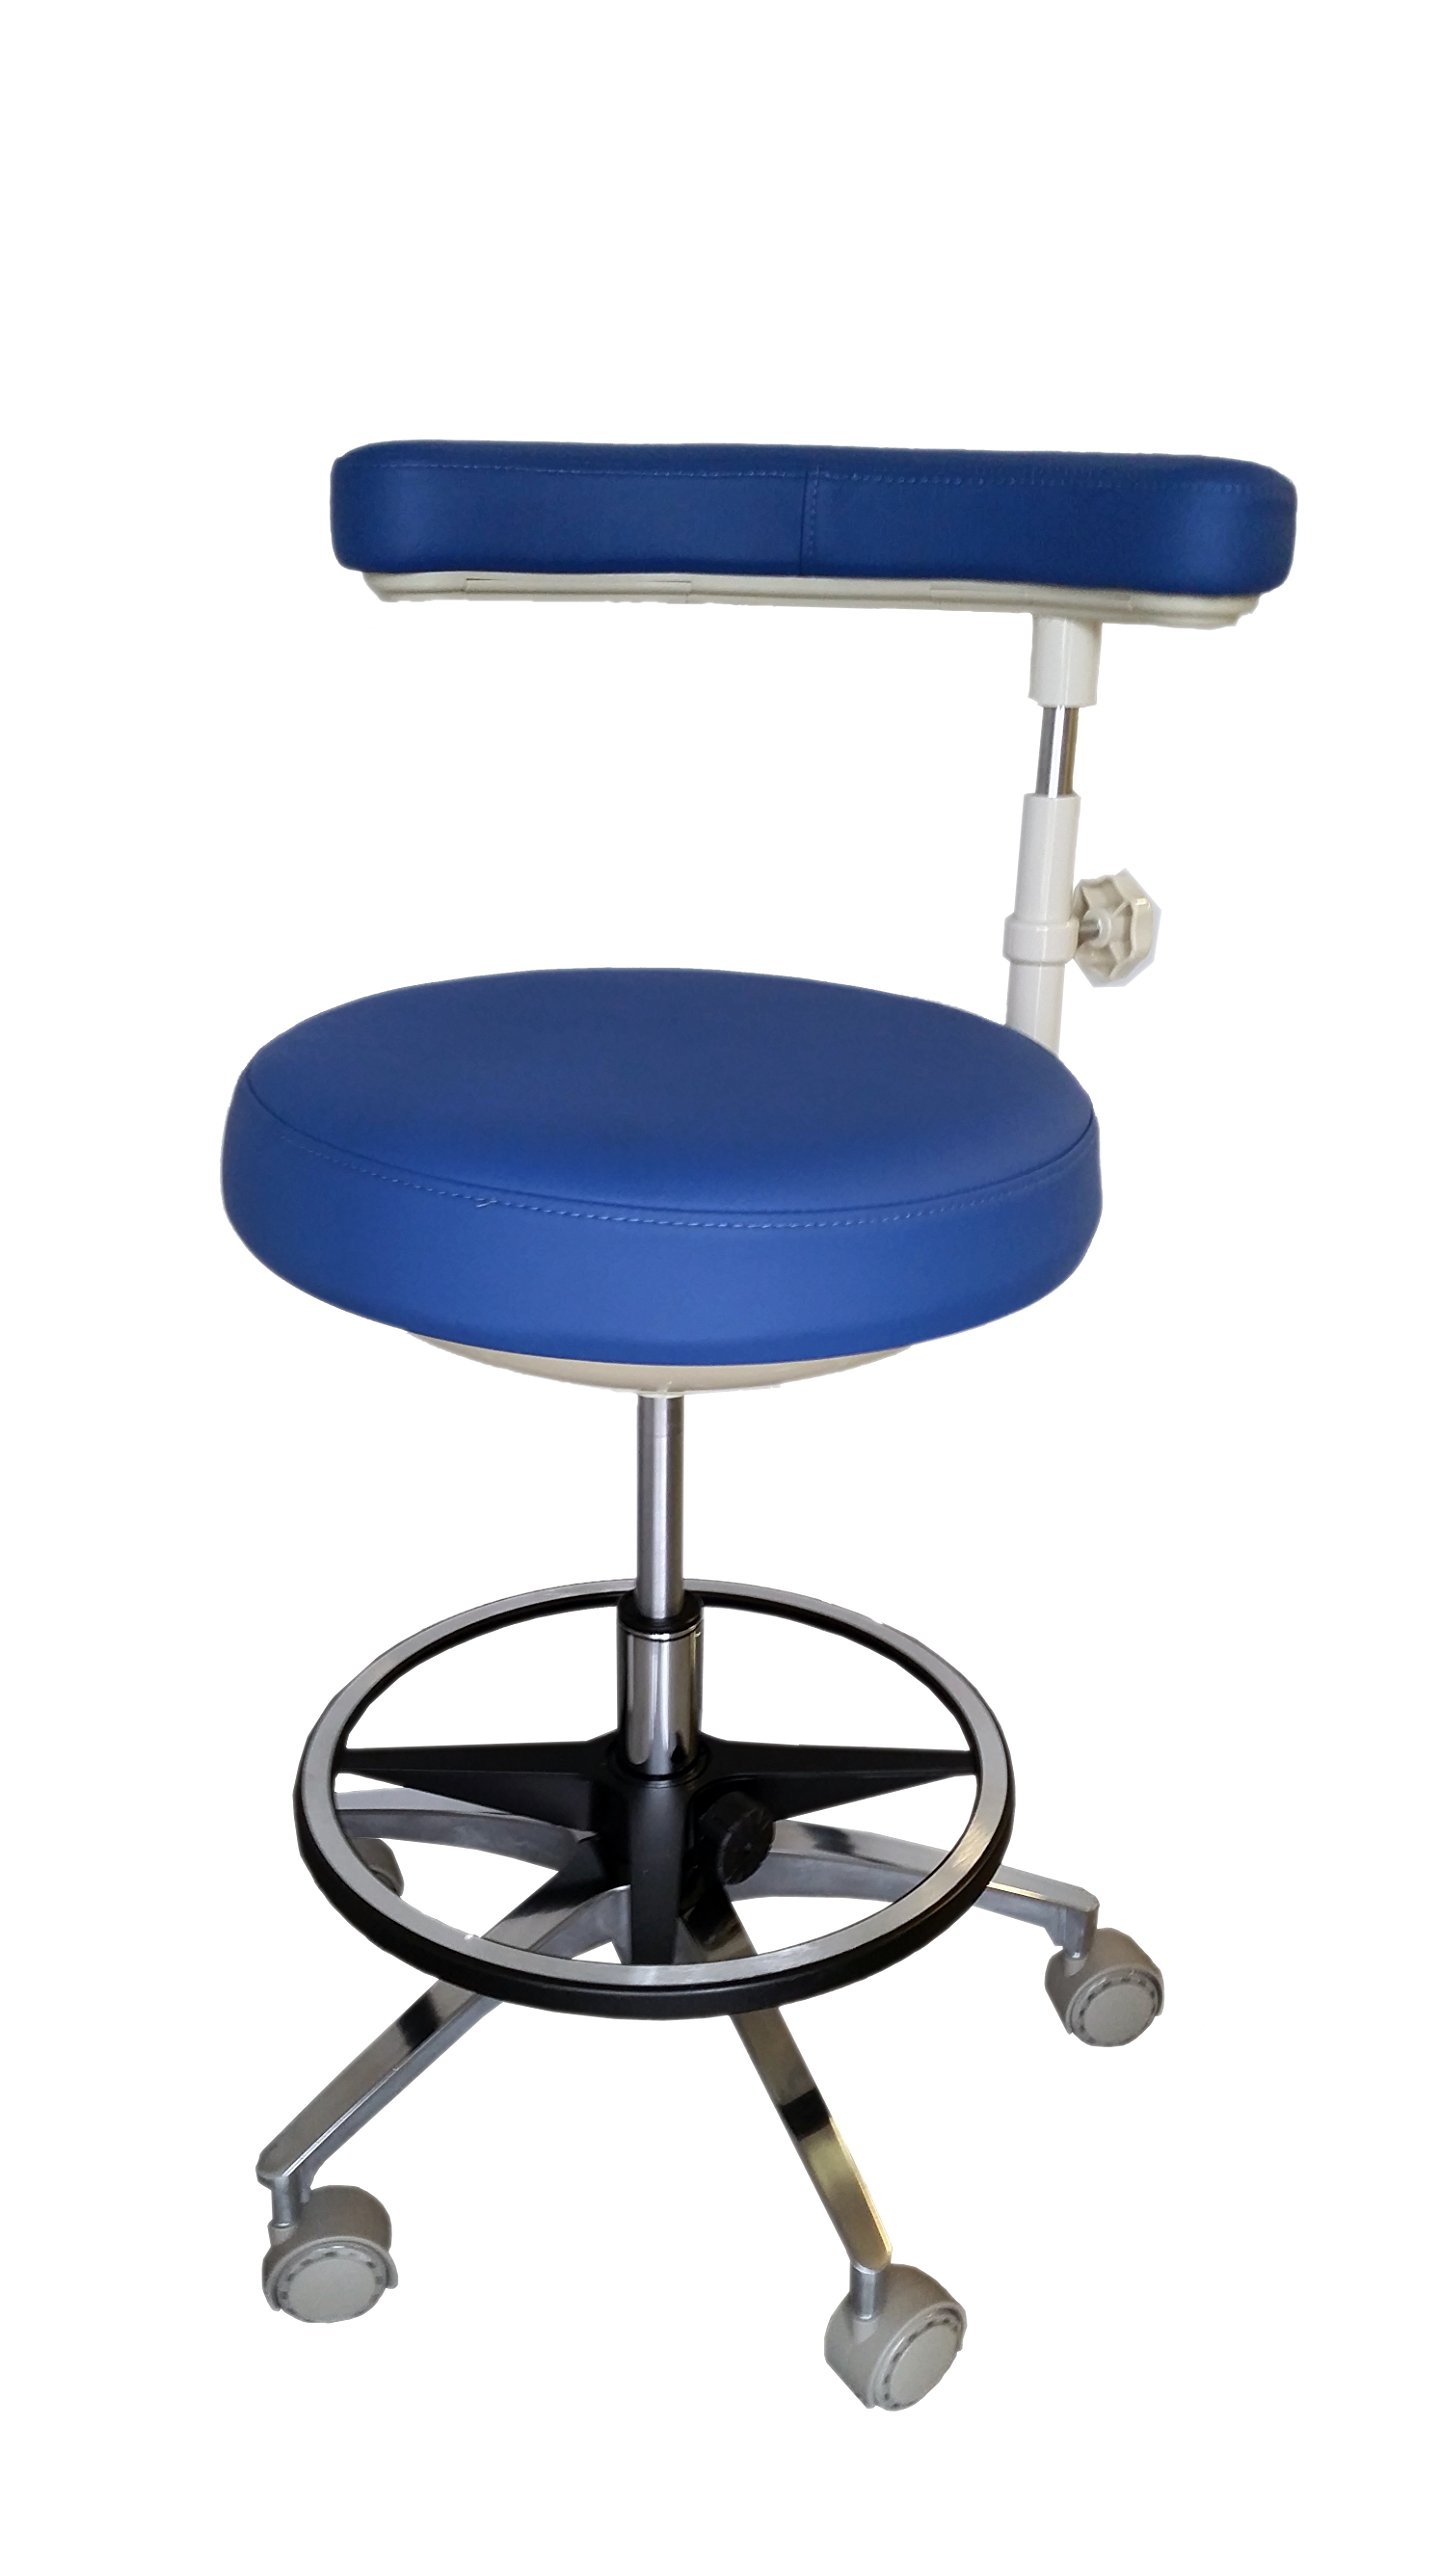 Assistant's Stool - Premium Dental Assistant's Stool, Dark Blue by Certified Dental Supply